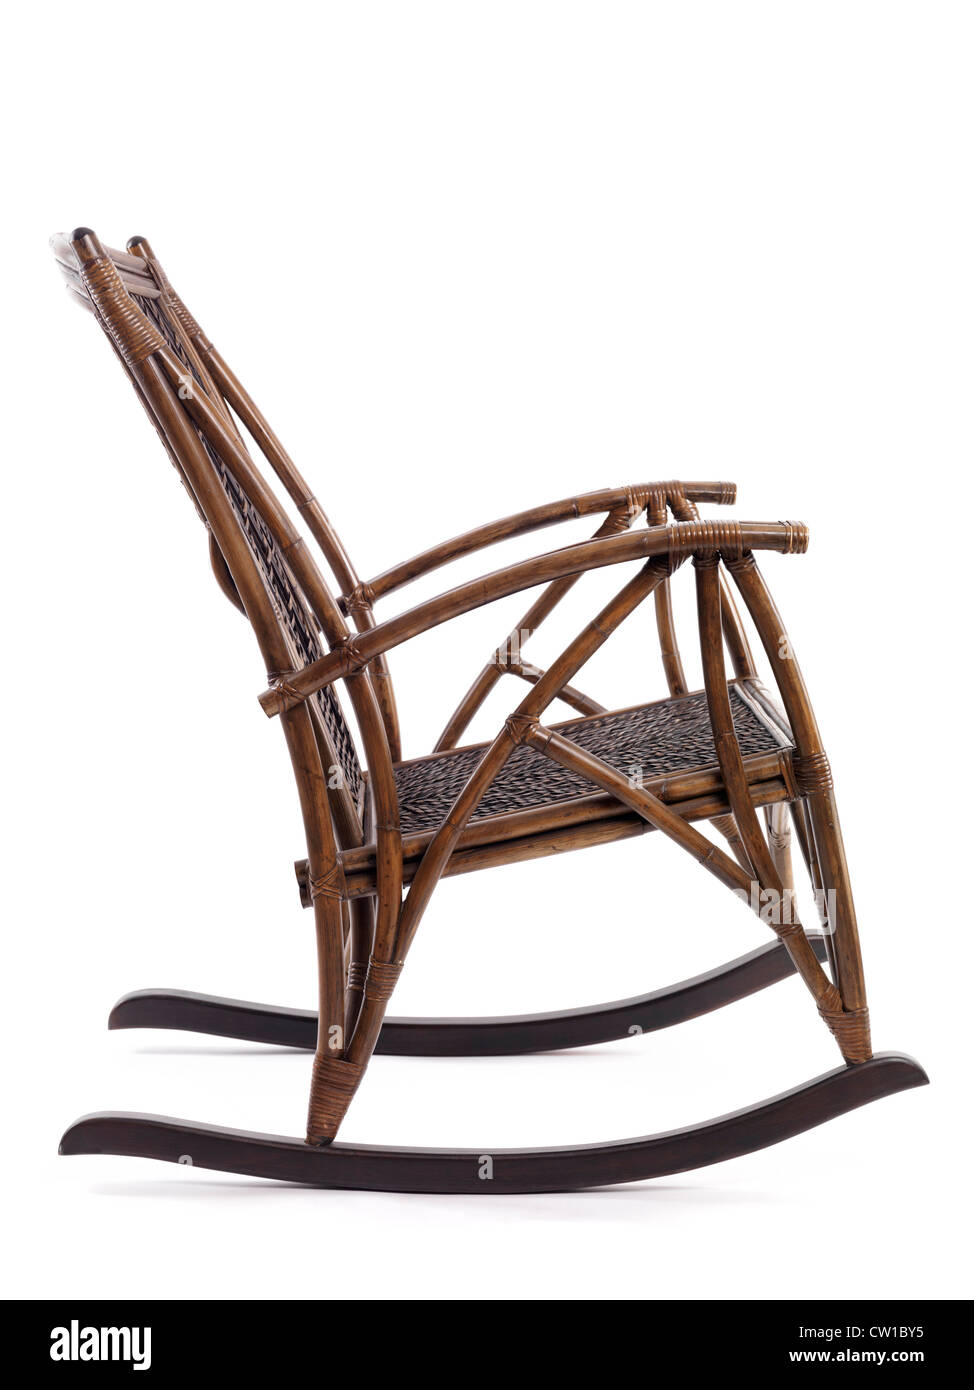 photo stock white wood rocking picture wooden old chair background on